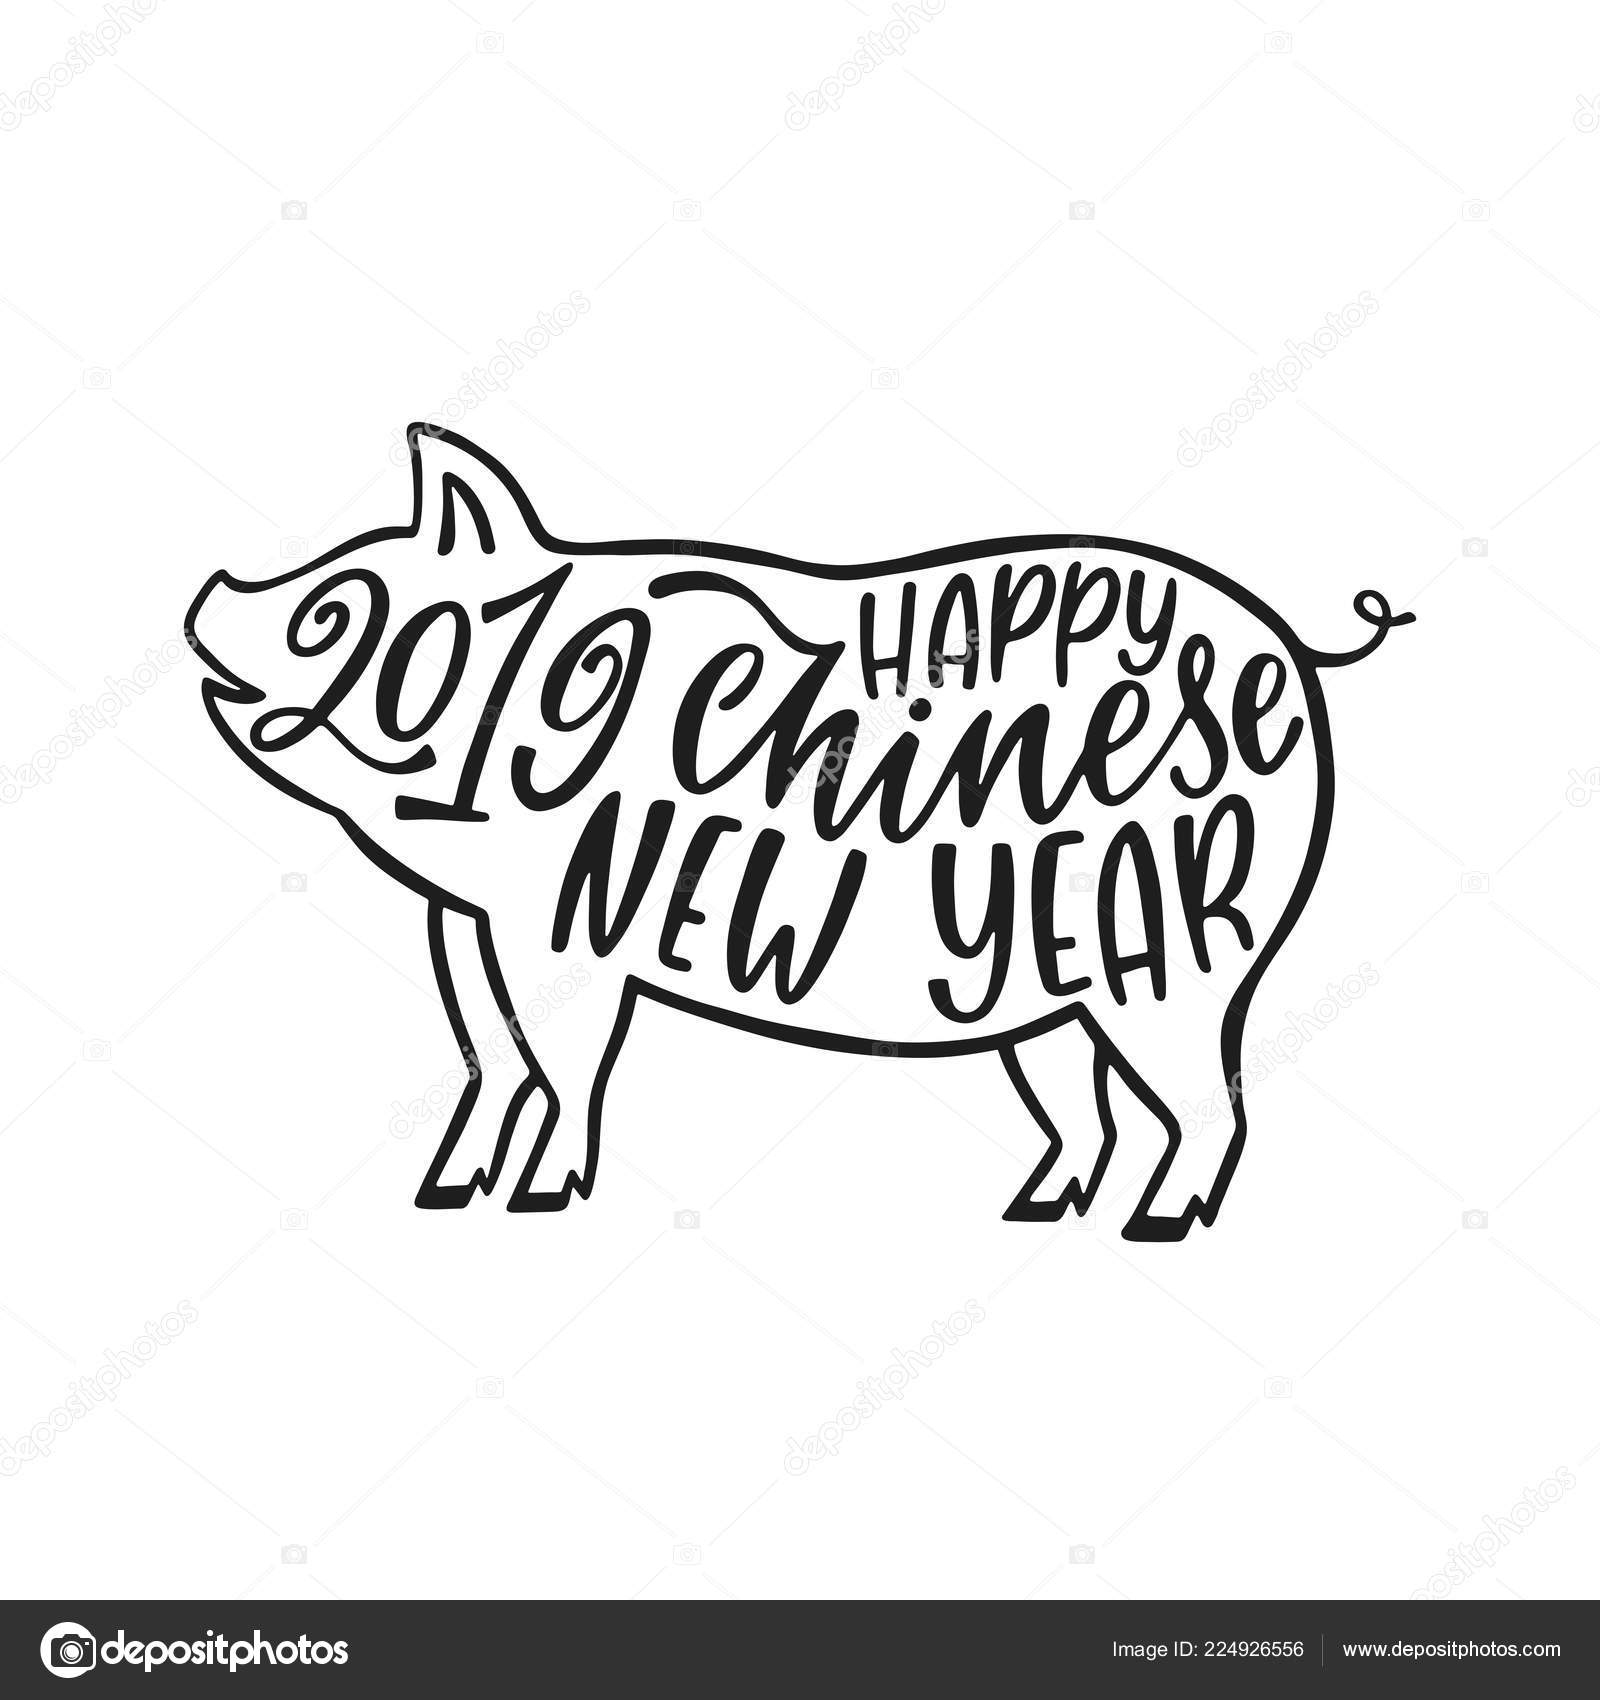 2019 Chinese New Year Of The Pig Hand Drawn Typography Design